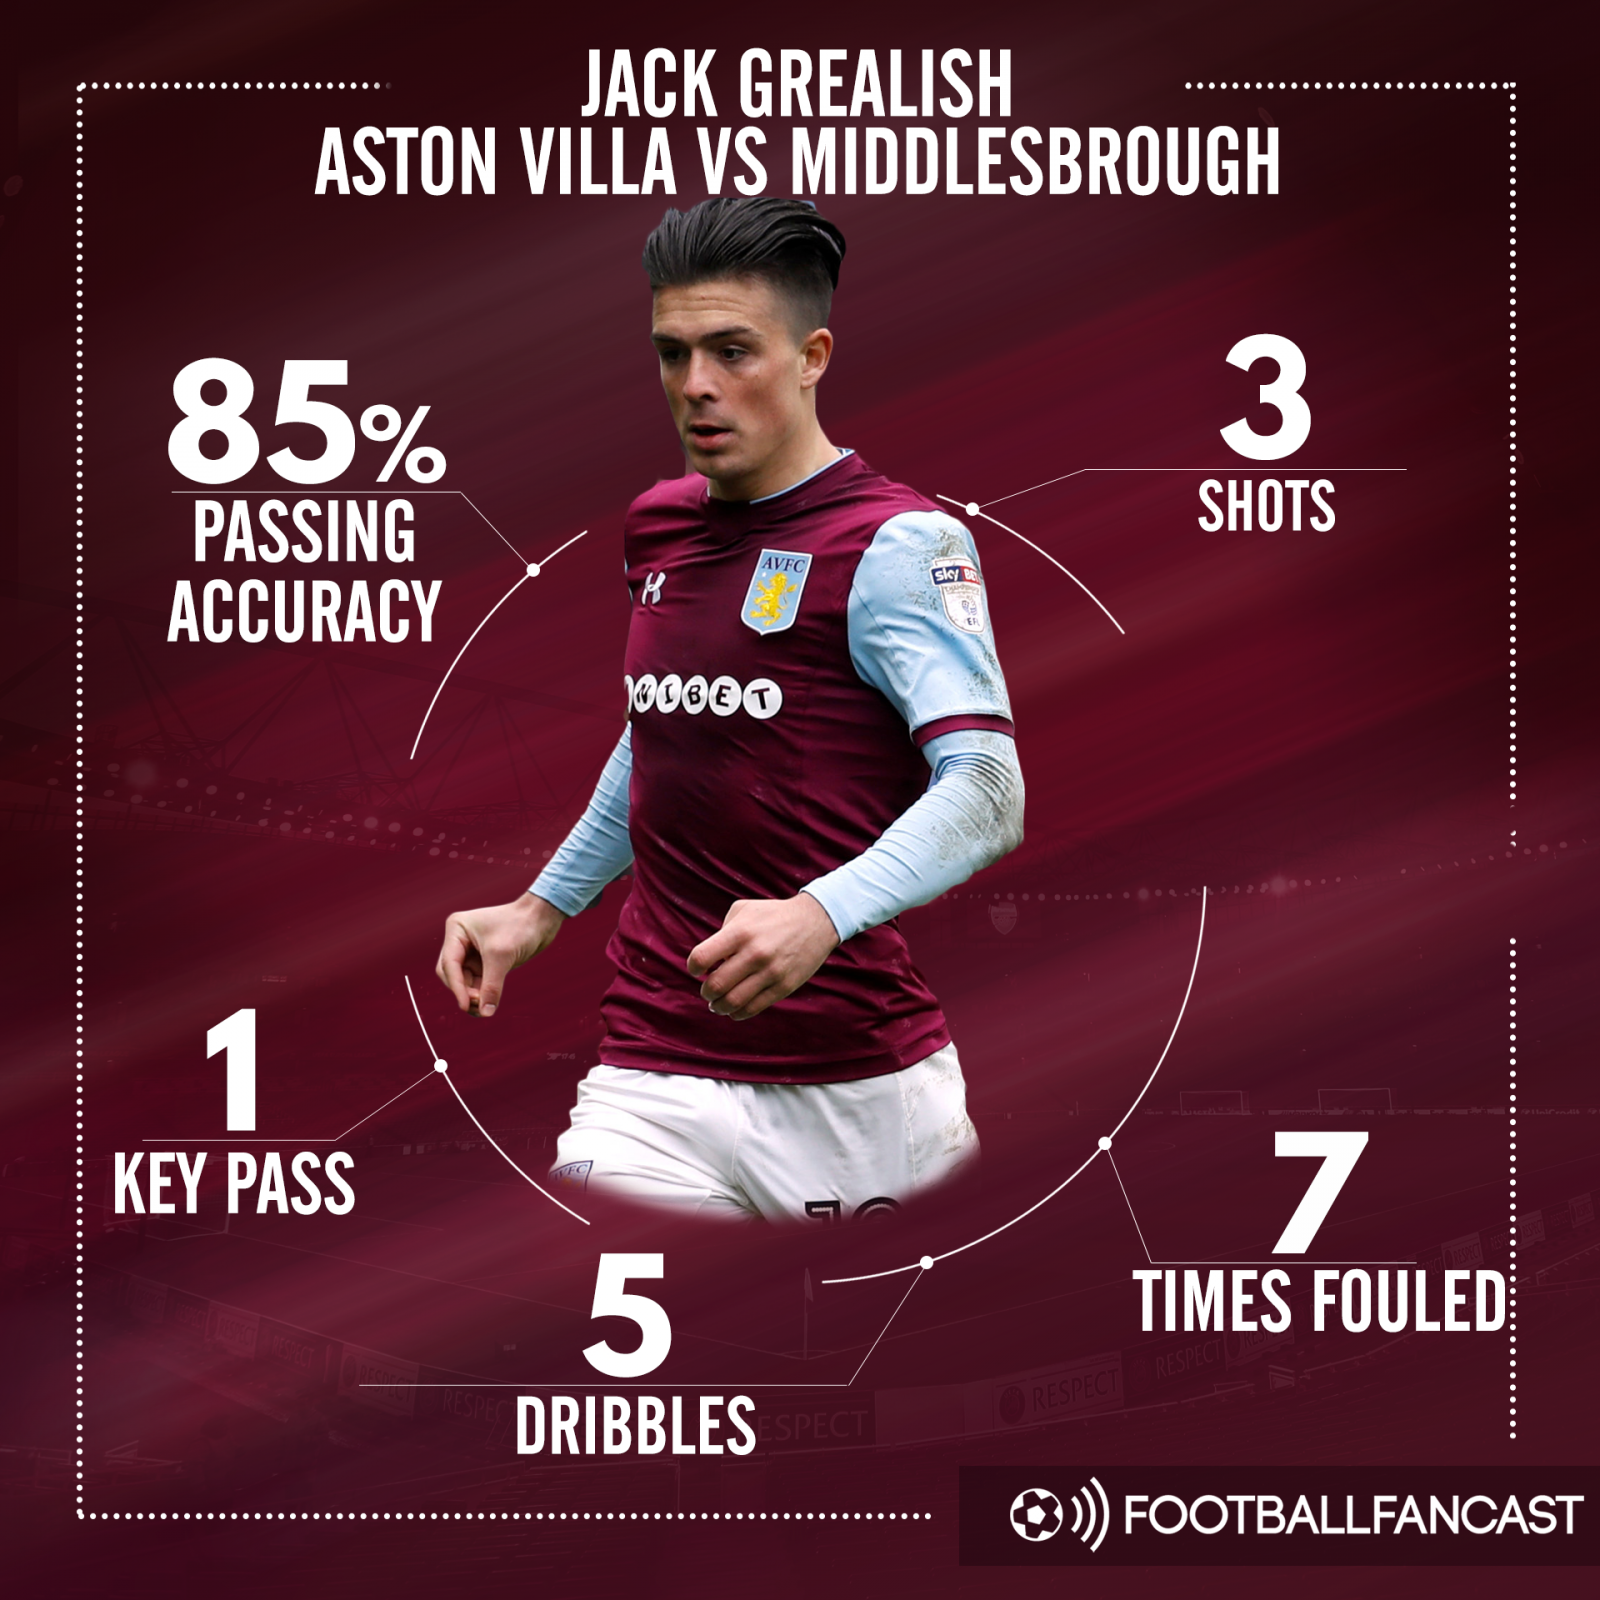 Jack Grealish stats vs Middlesbrough